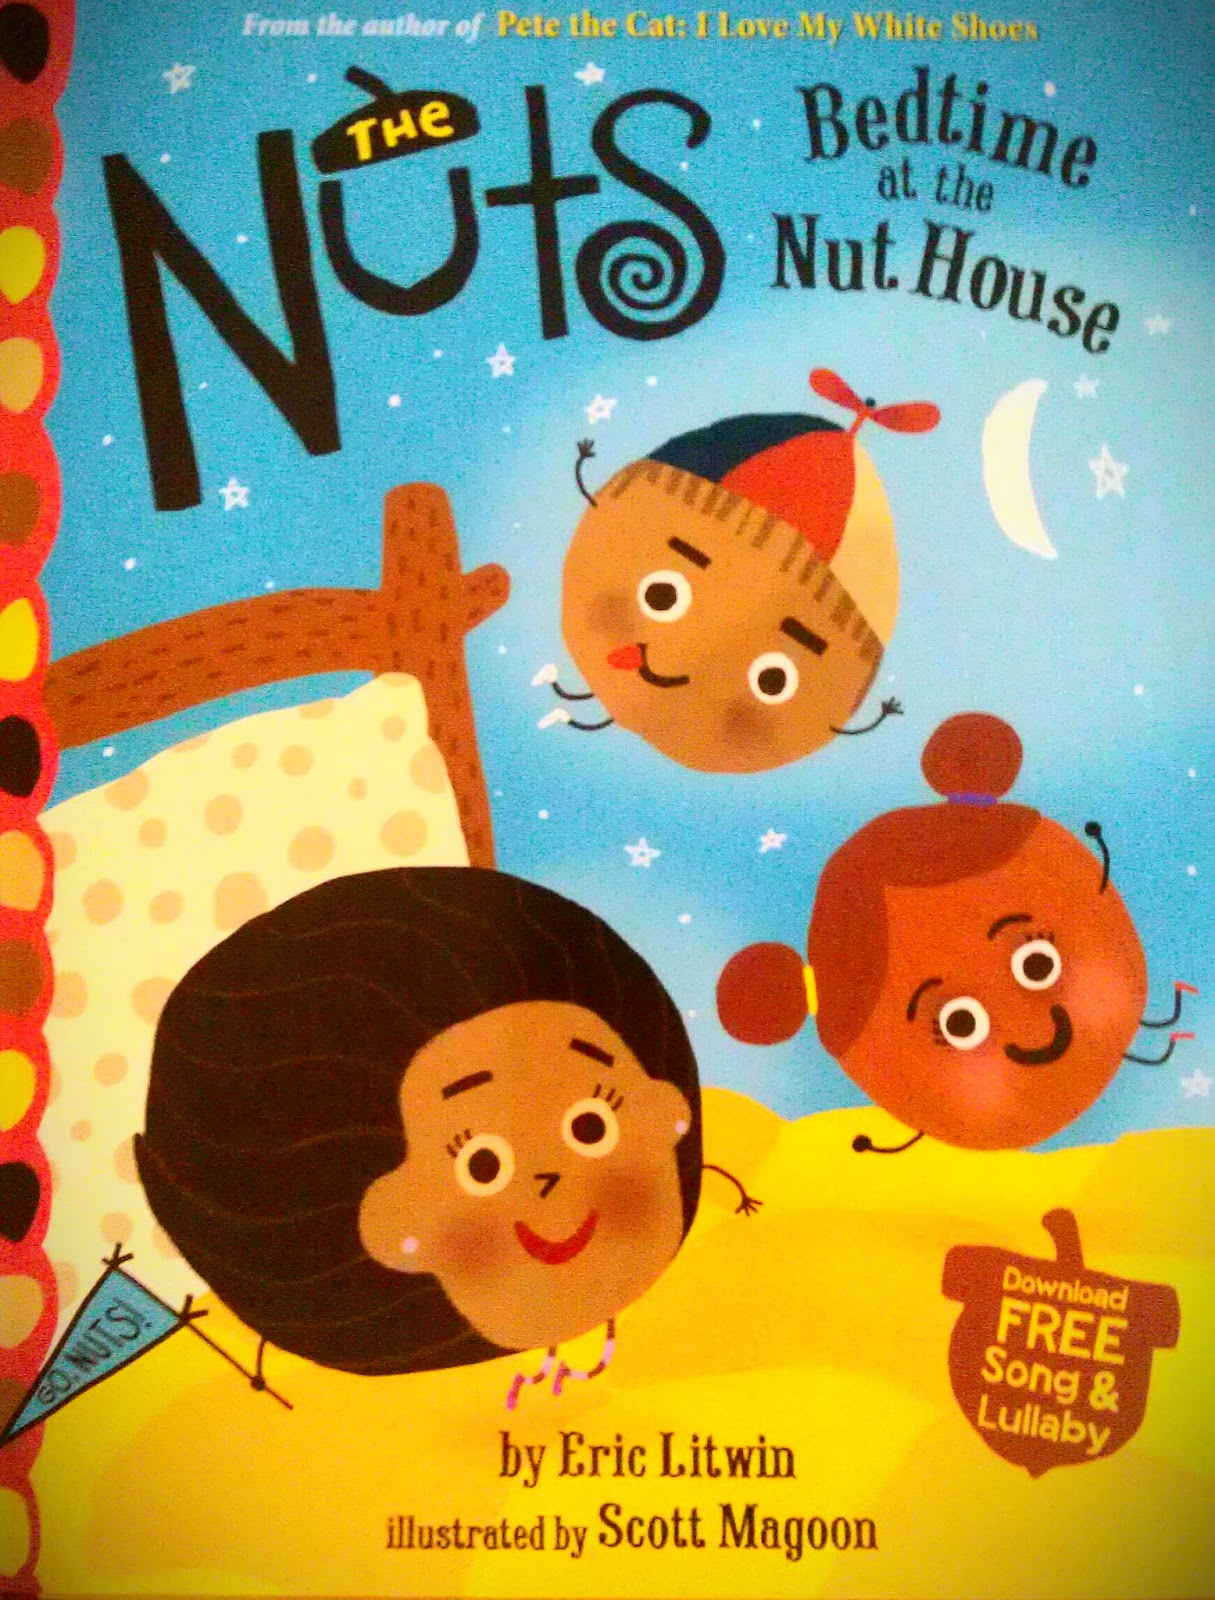 http://www.amazon.com/The-Nuts-Bedtime-Nut-House/dp/031632244X/ref=sr_1_1?ie=UTF8&qid=1413565592&sr=8-1&keywords=Bedtime+at+the+nut+house